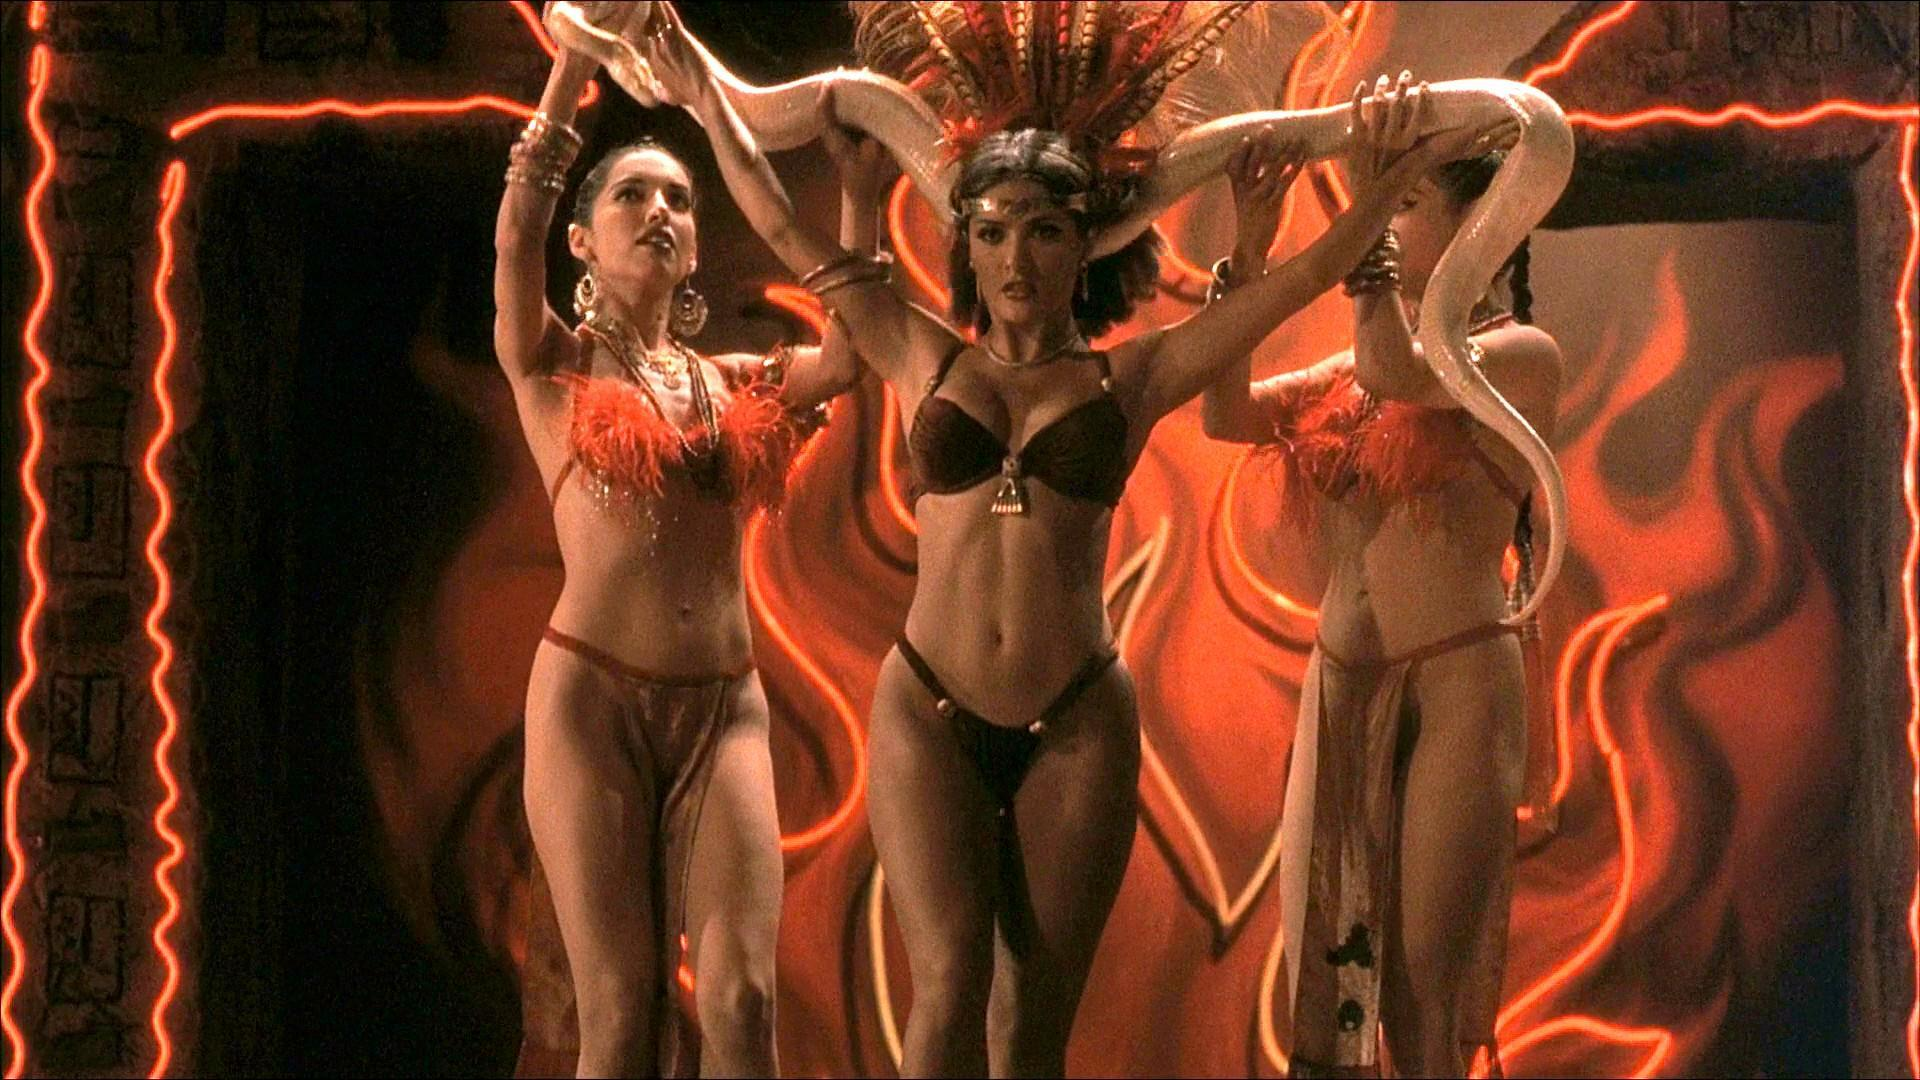 Image Gallery For From Dusk Till Dawn Filmaffinity